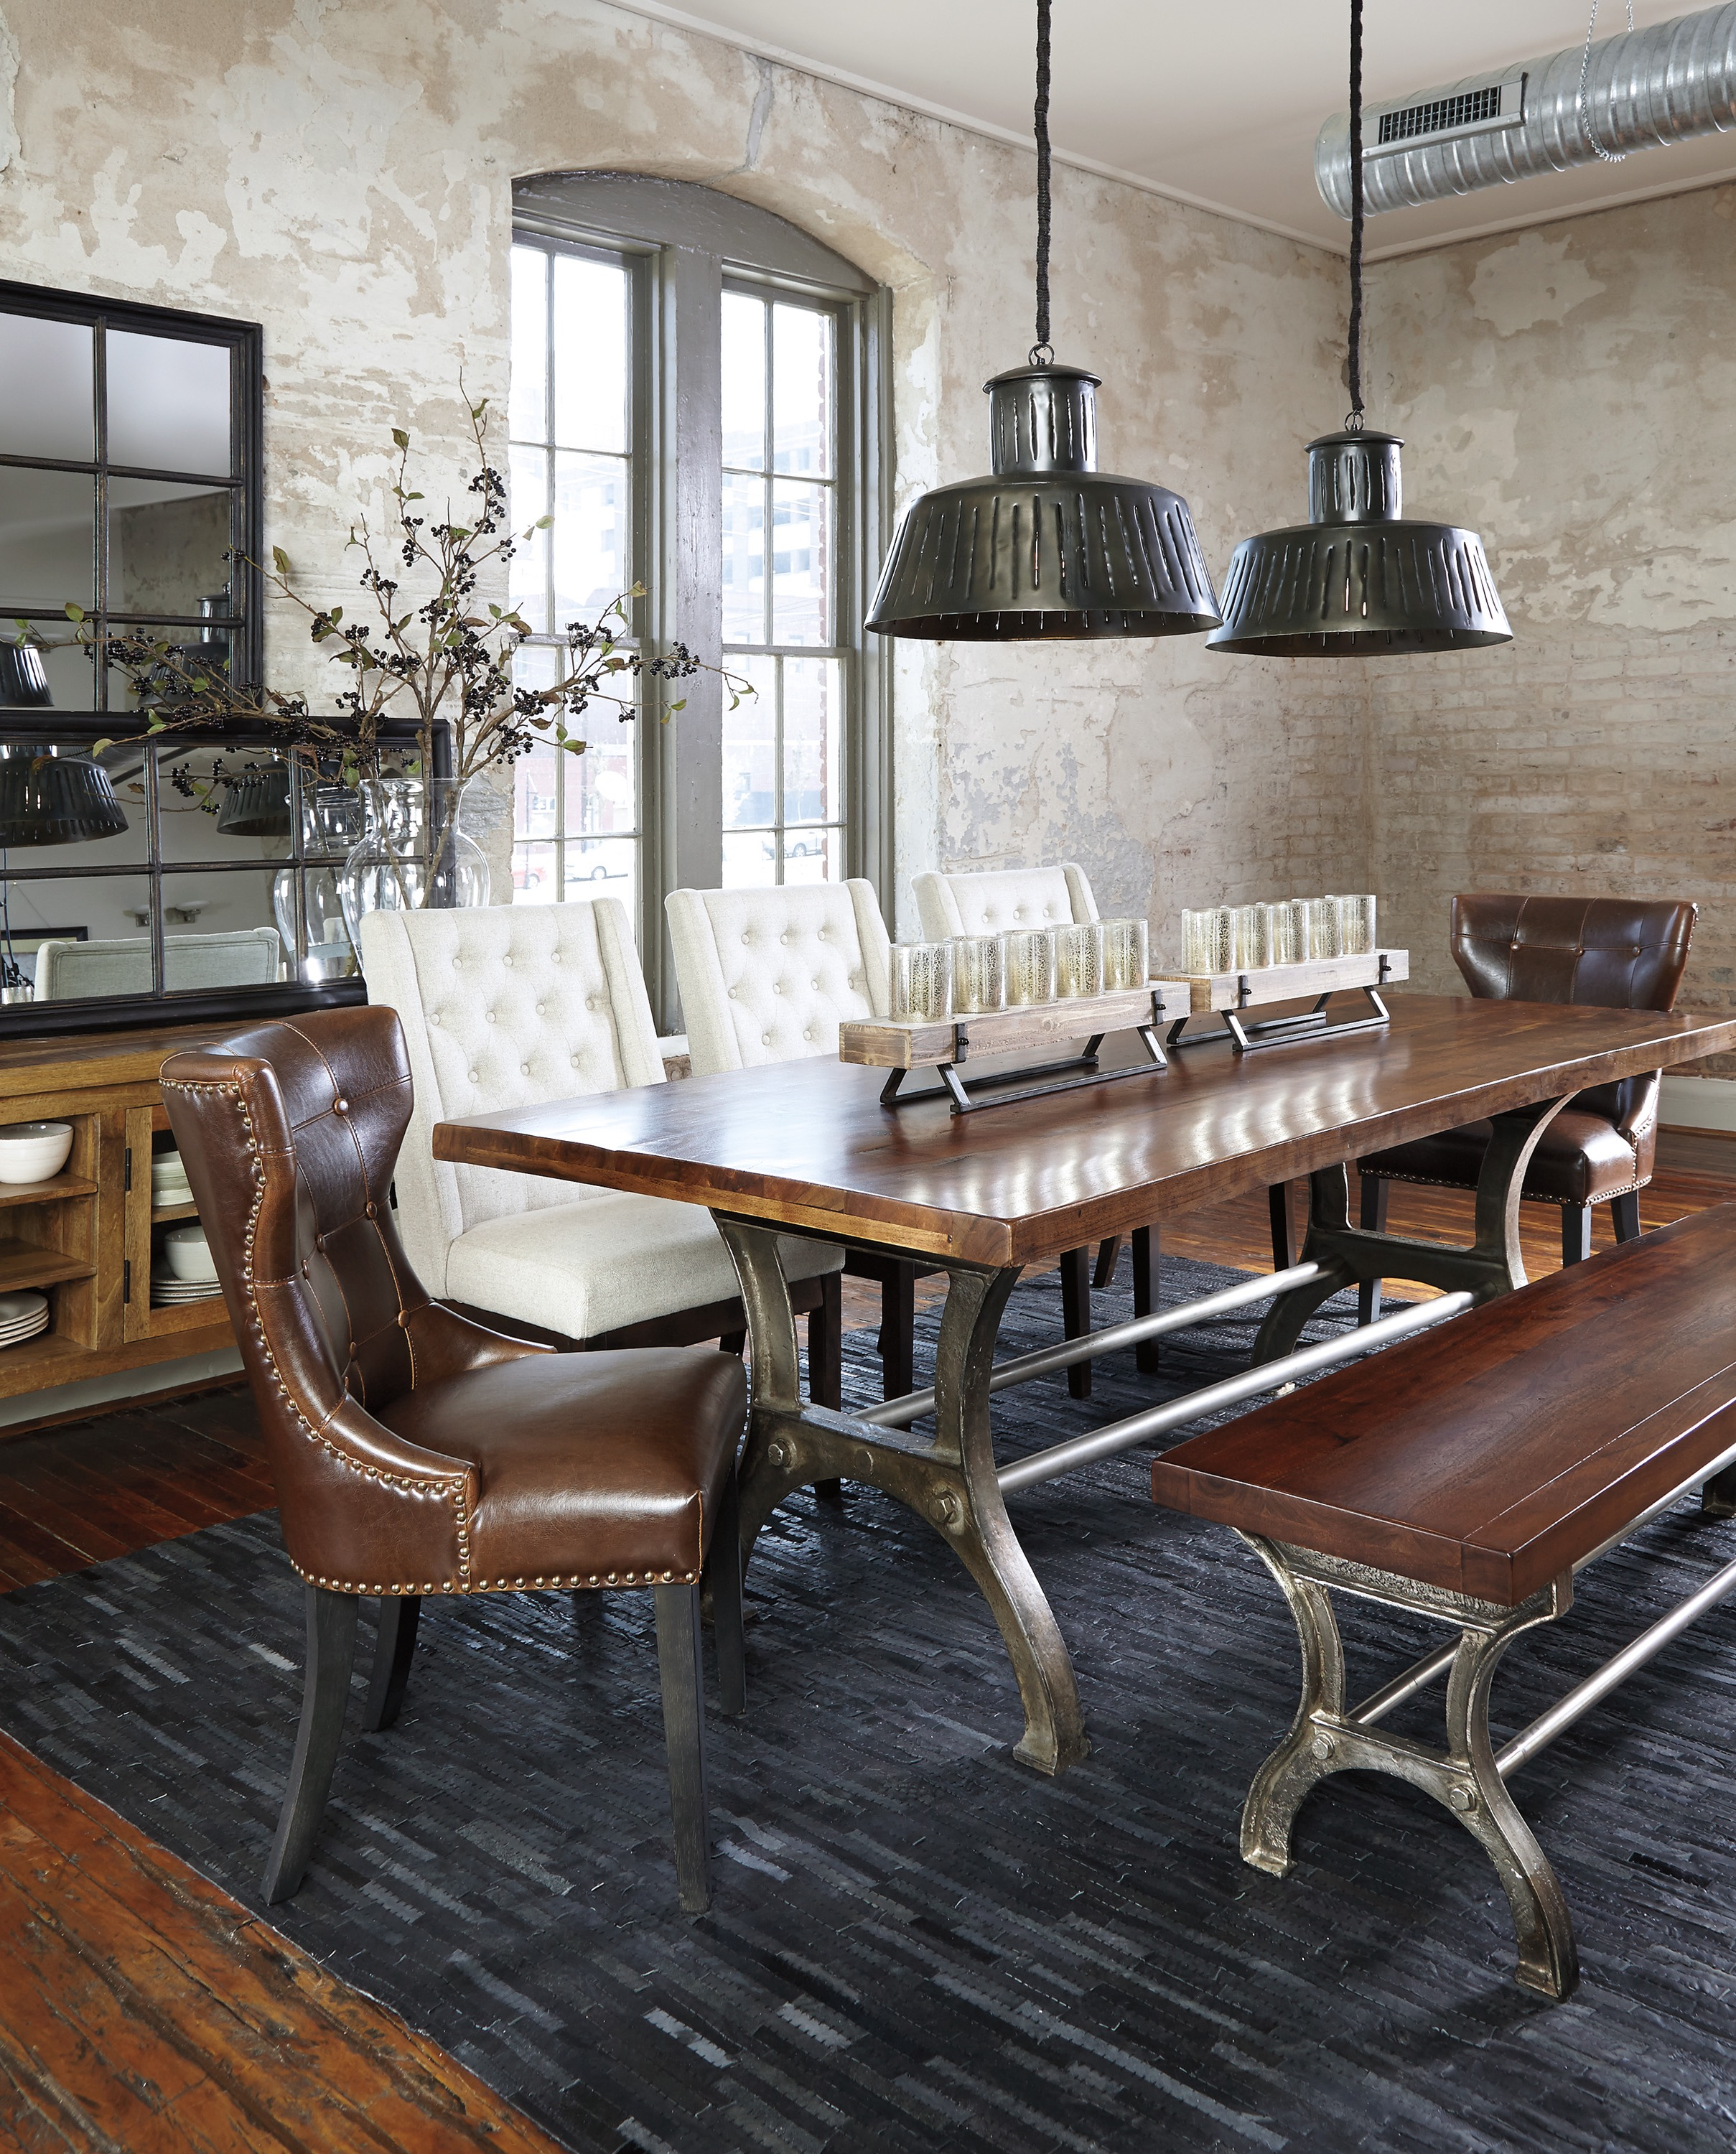 Classic Furniture For Elegant Dining Room (View 10 of 42)